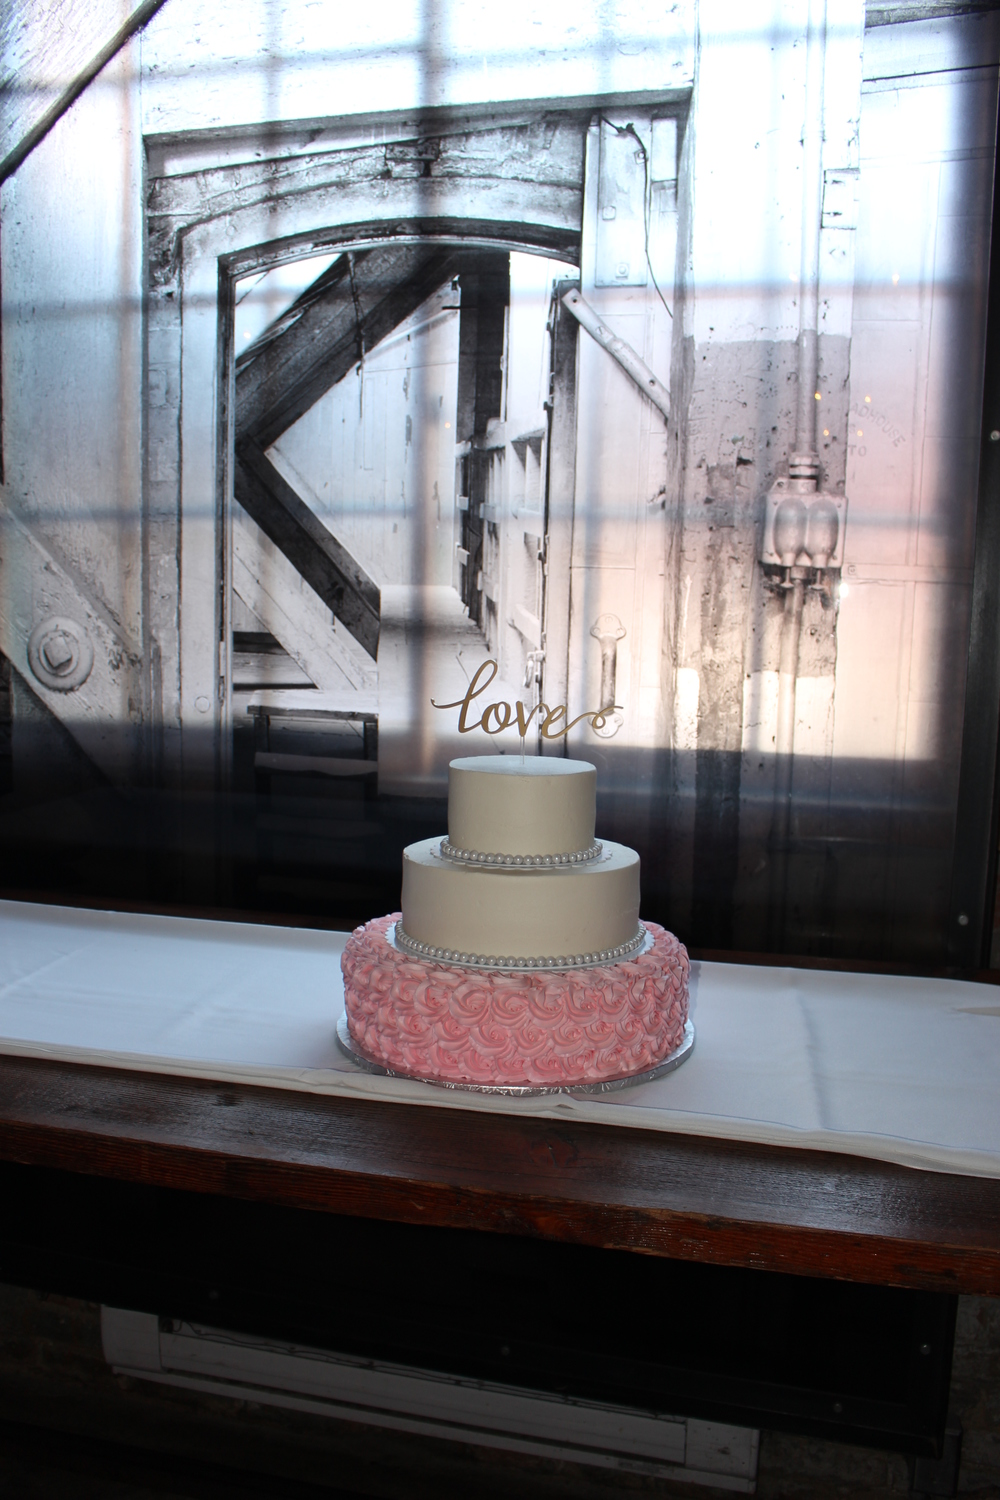 Love the frosted glass backdrop for the cake!